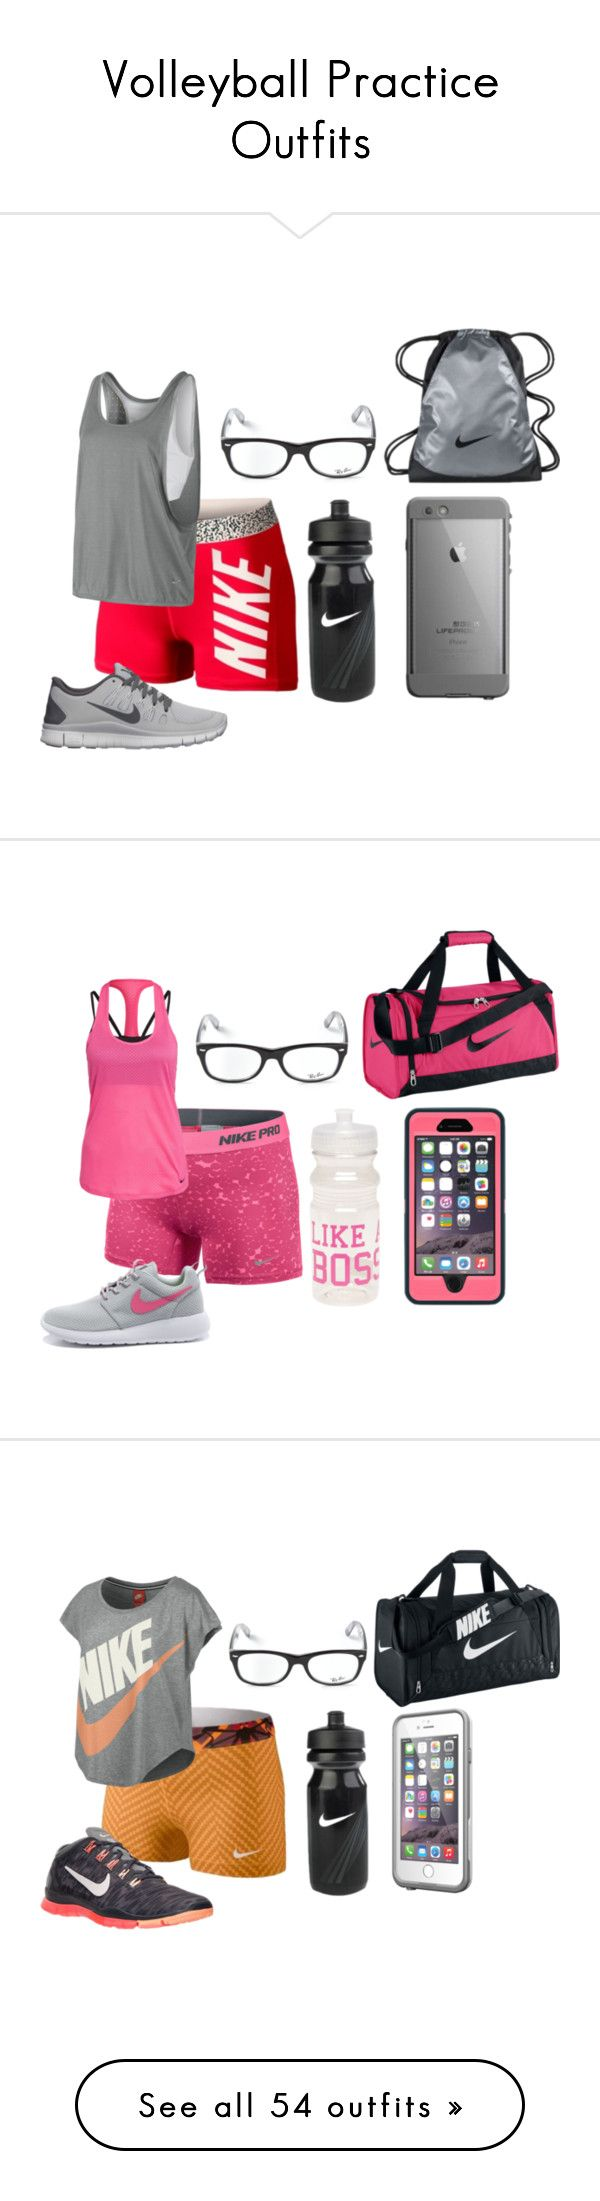 """Volleyball Practice Outfits"" by mbvs on Polyvore"